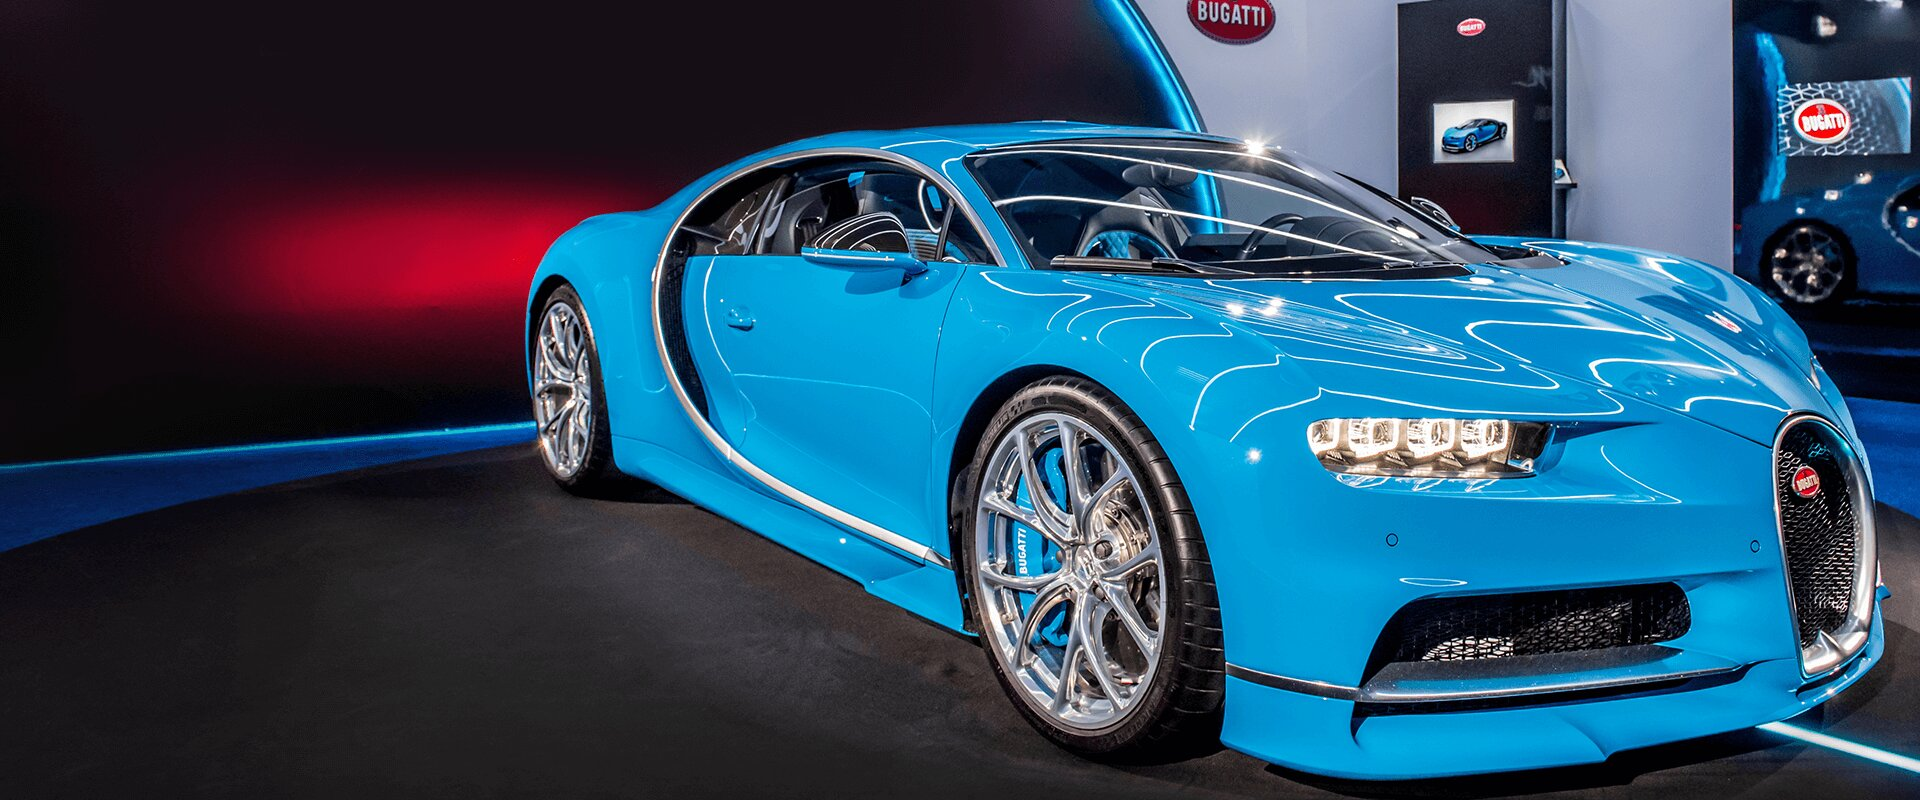 chiron south east asia